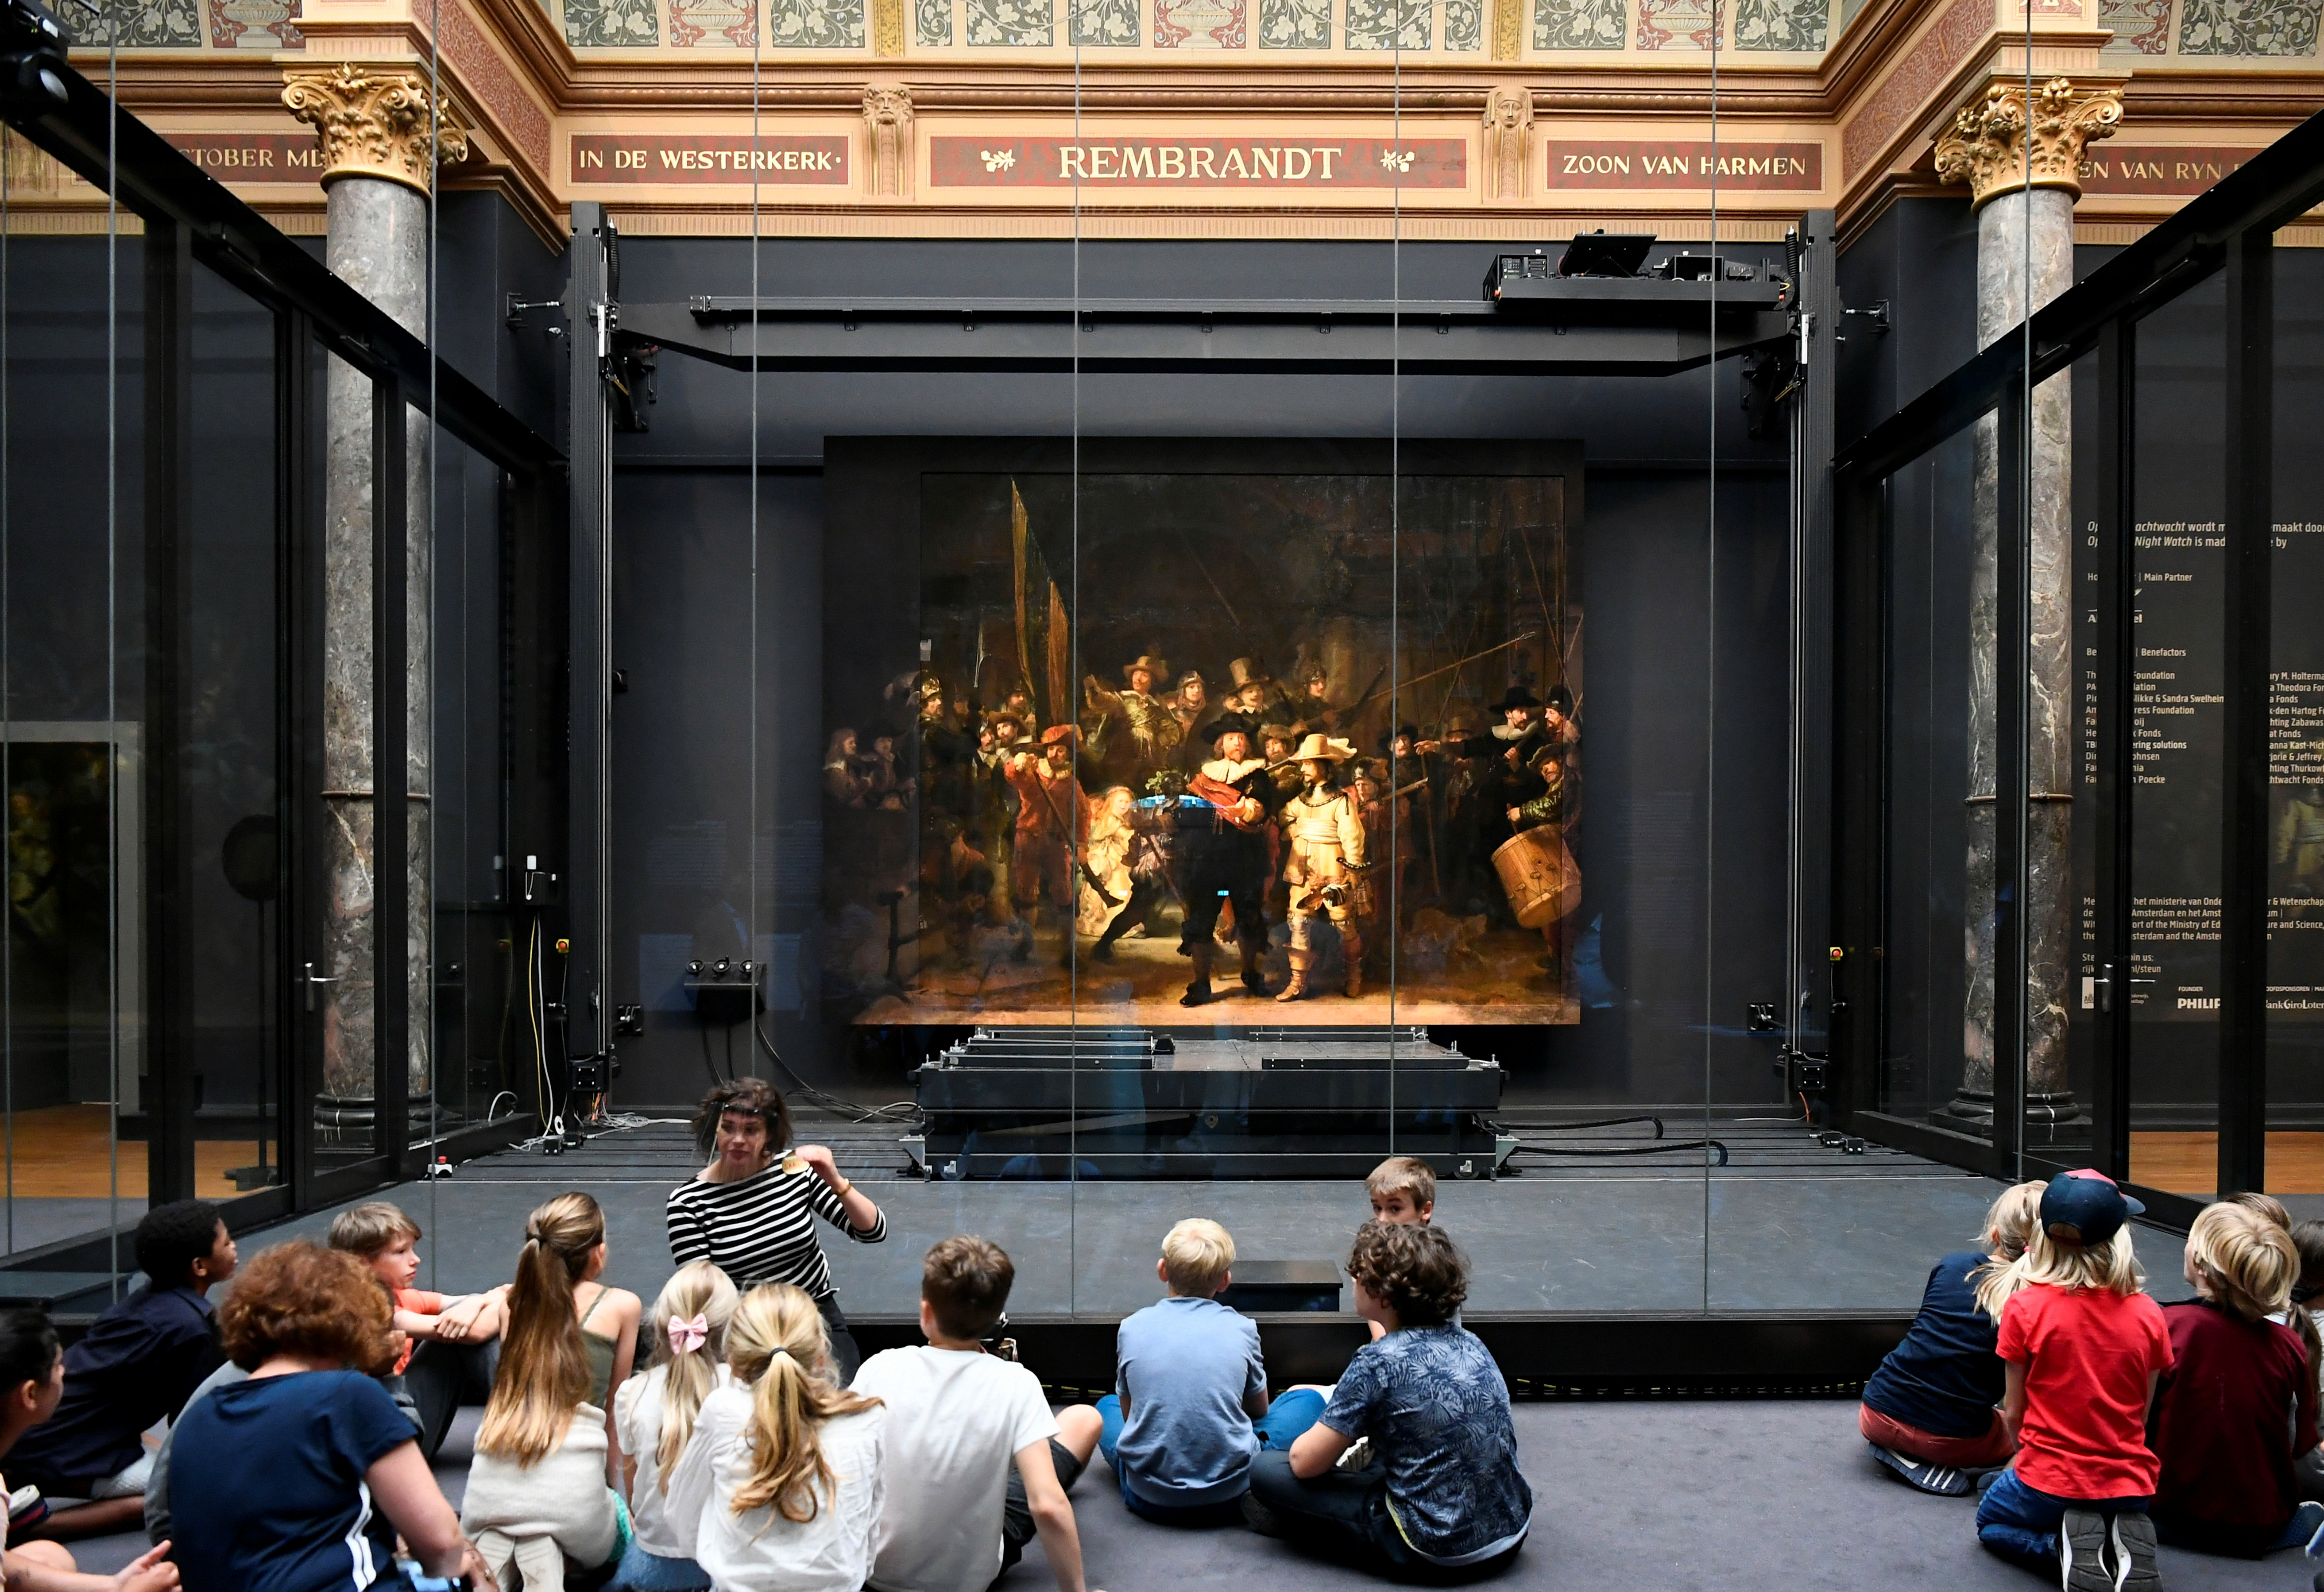 Children look at Rembrandt's famed Night Watch, which is back on display in what researchers say in its original size, with missing parts temporarily restored in an exhibition aided by artificial intelligence, at Rijksmuseum in Amsterdam, Netherlands June 23, 2021. REUTERS/Piroschka van de Wouw